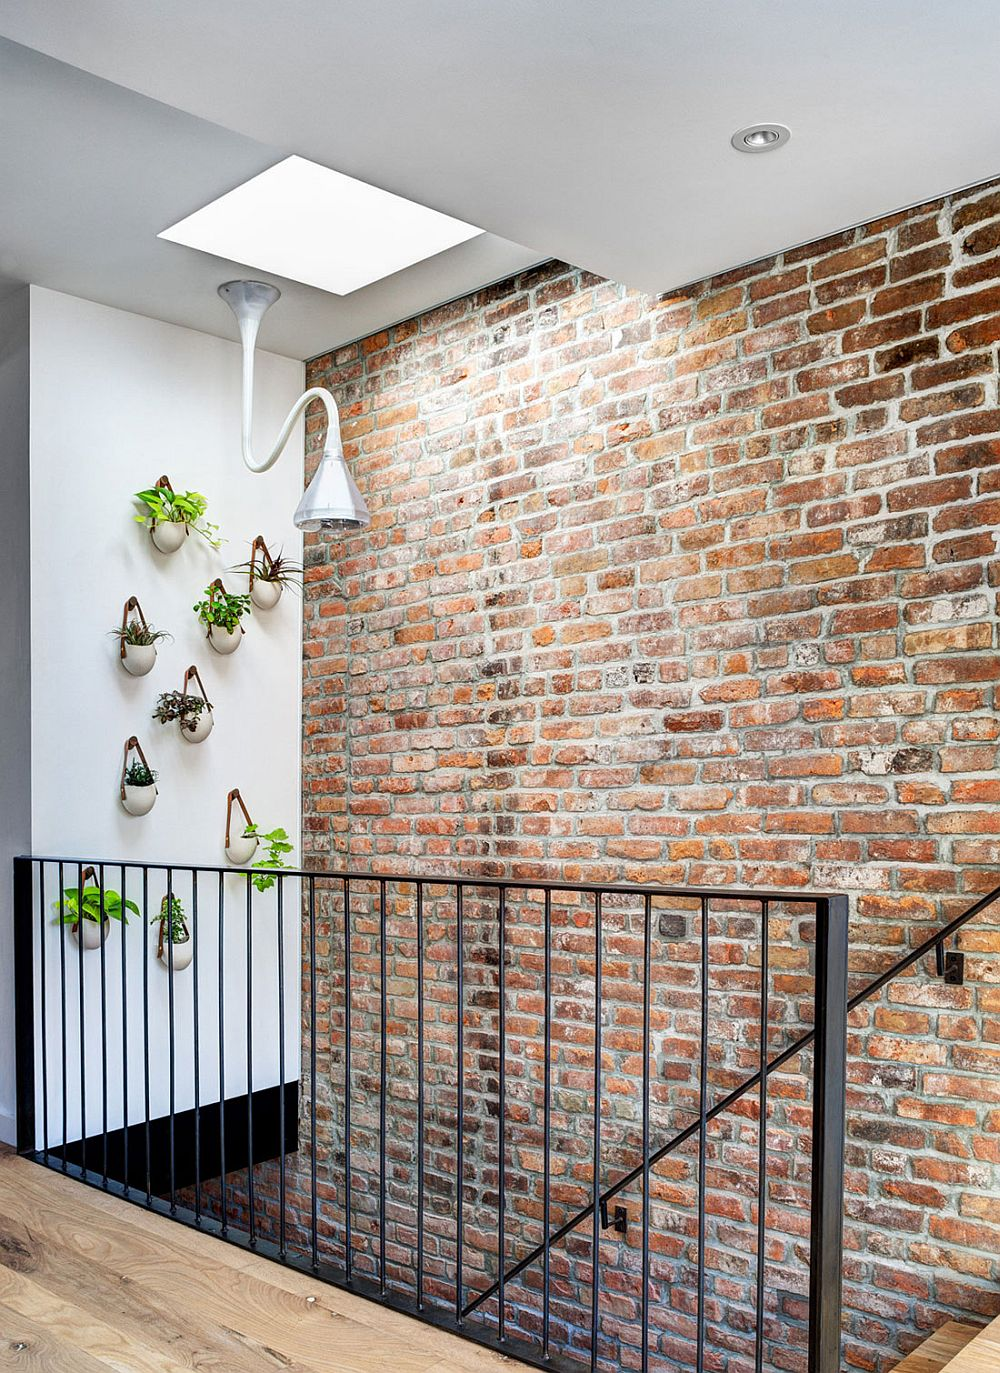 Gorgeous wall planters next to the staircase with skylight above